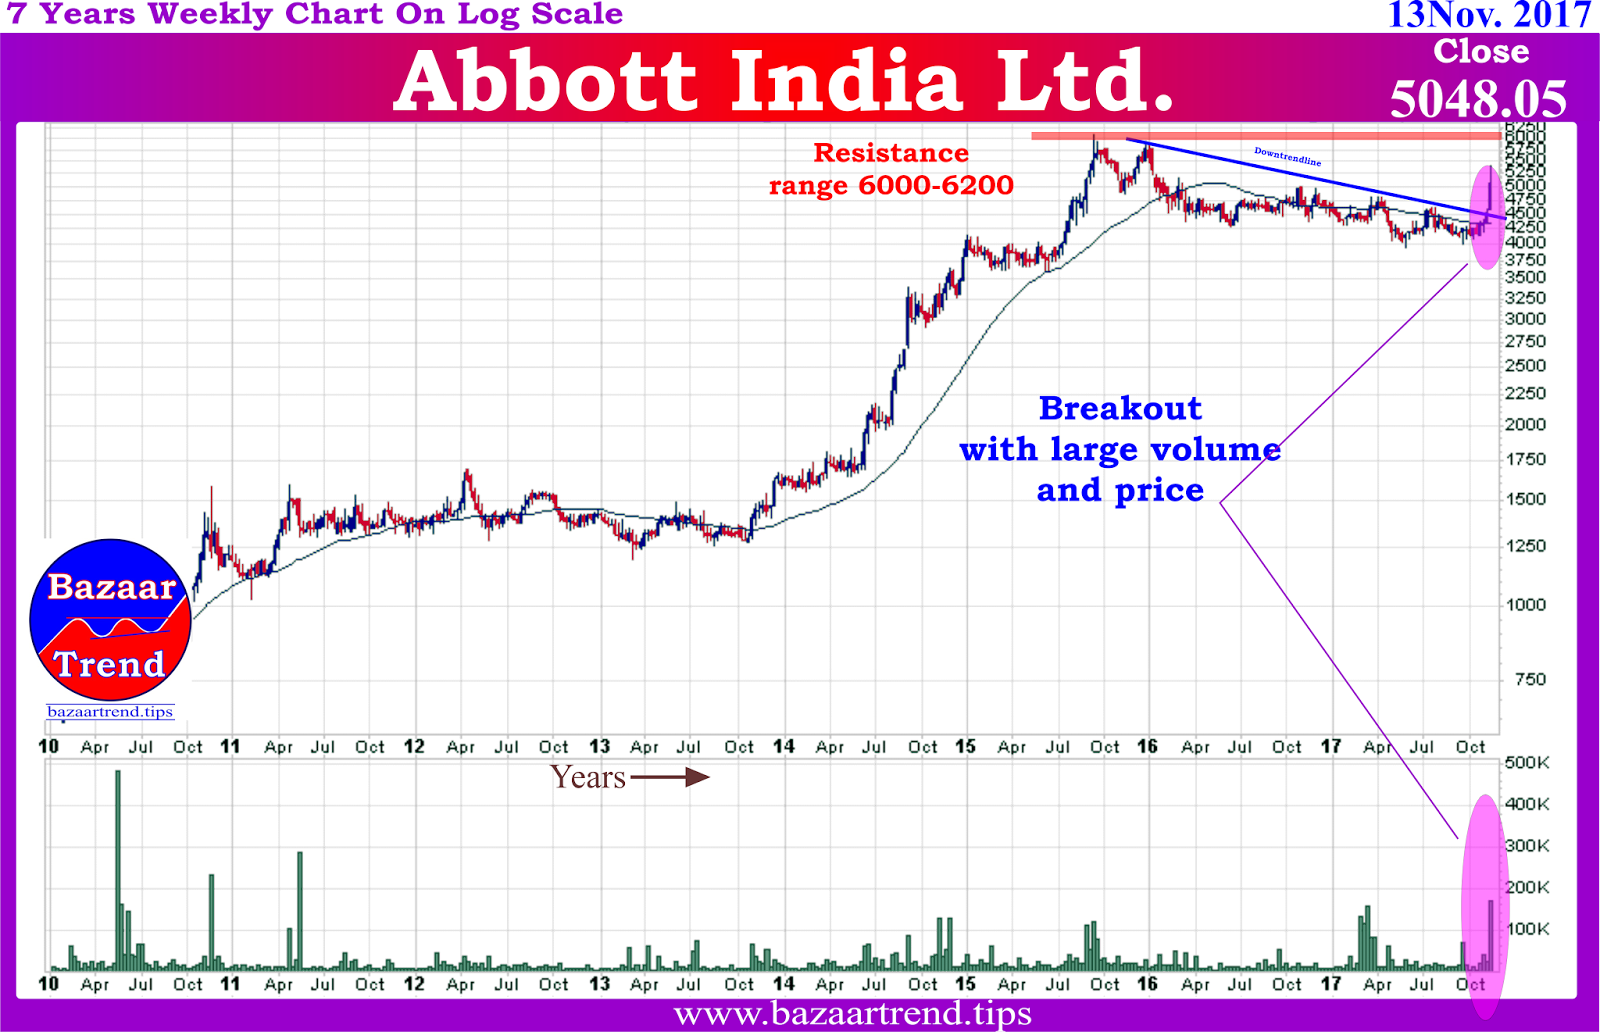 Abbott India Ltd For Next Intraday Trading On Tuesday 14 Nov Is Rs 501882 Resistance Levels Are R1 Rs544264 R2 Rs583722 And R3 Rs626104